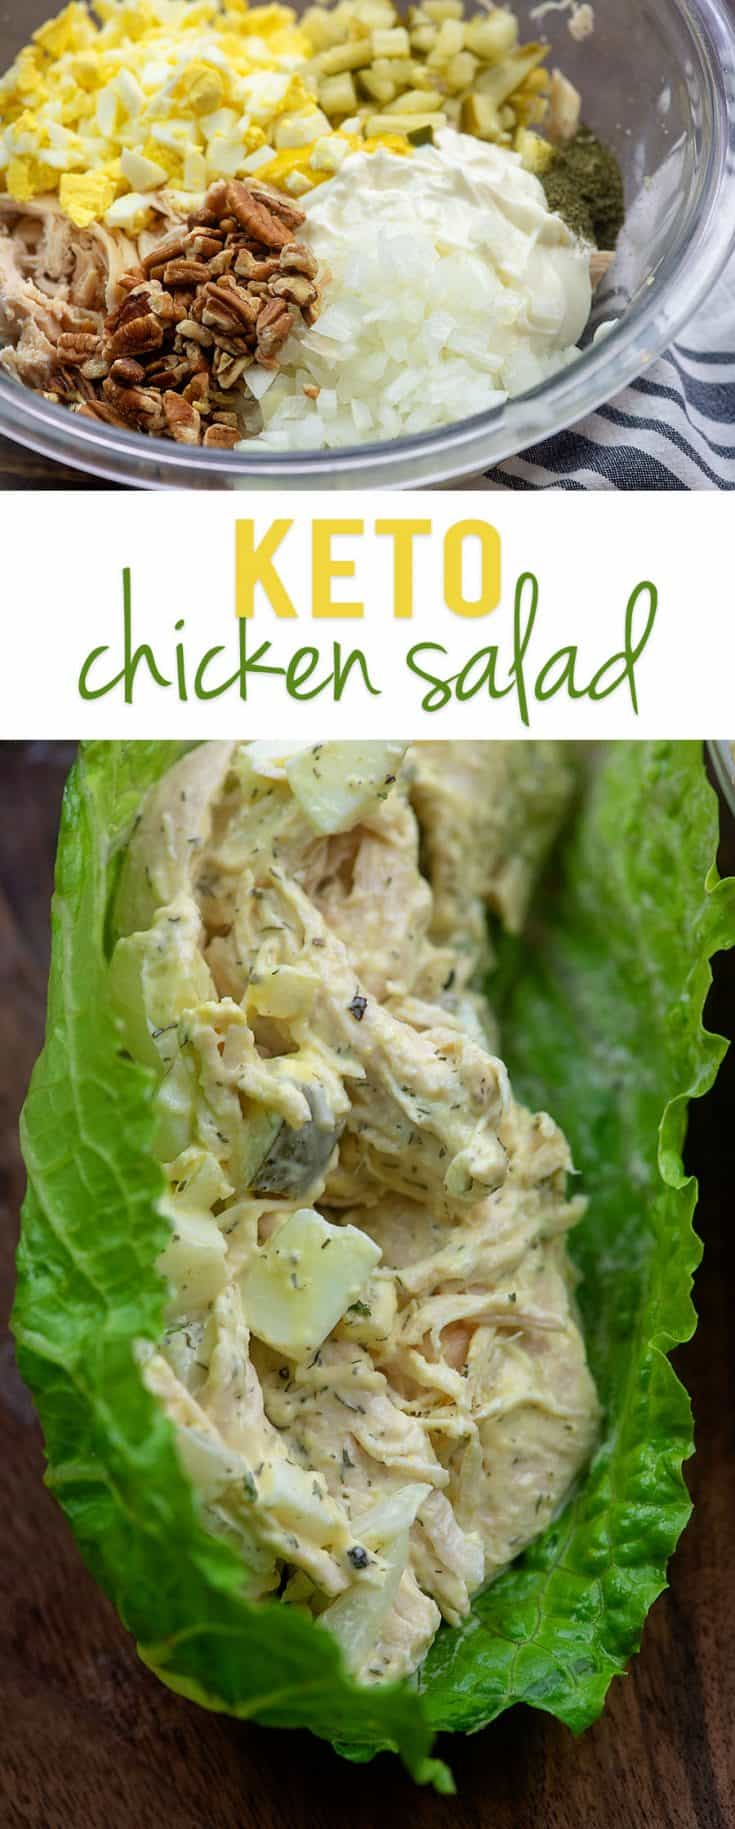 Keto chicken salad loaded up with lots of goodies for maximum flavor! #lowcarb #keto #chicken #recipe